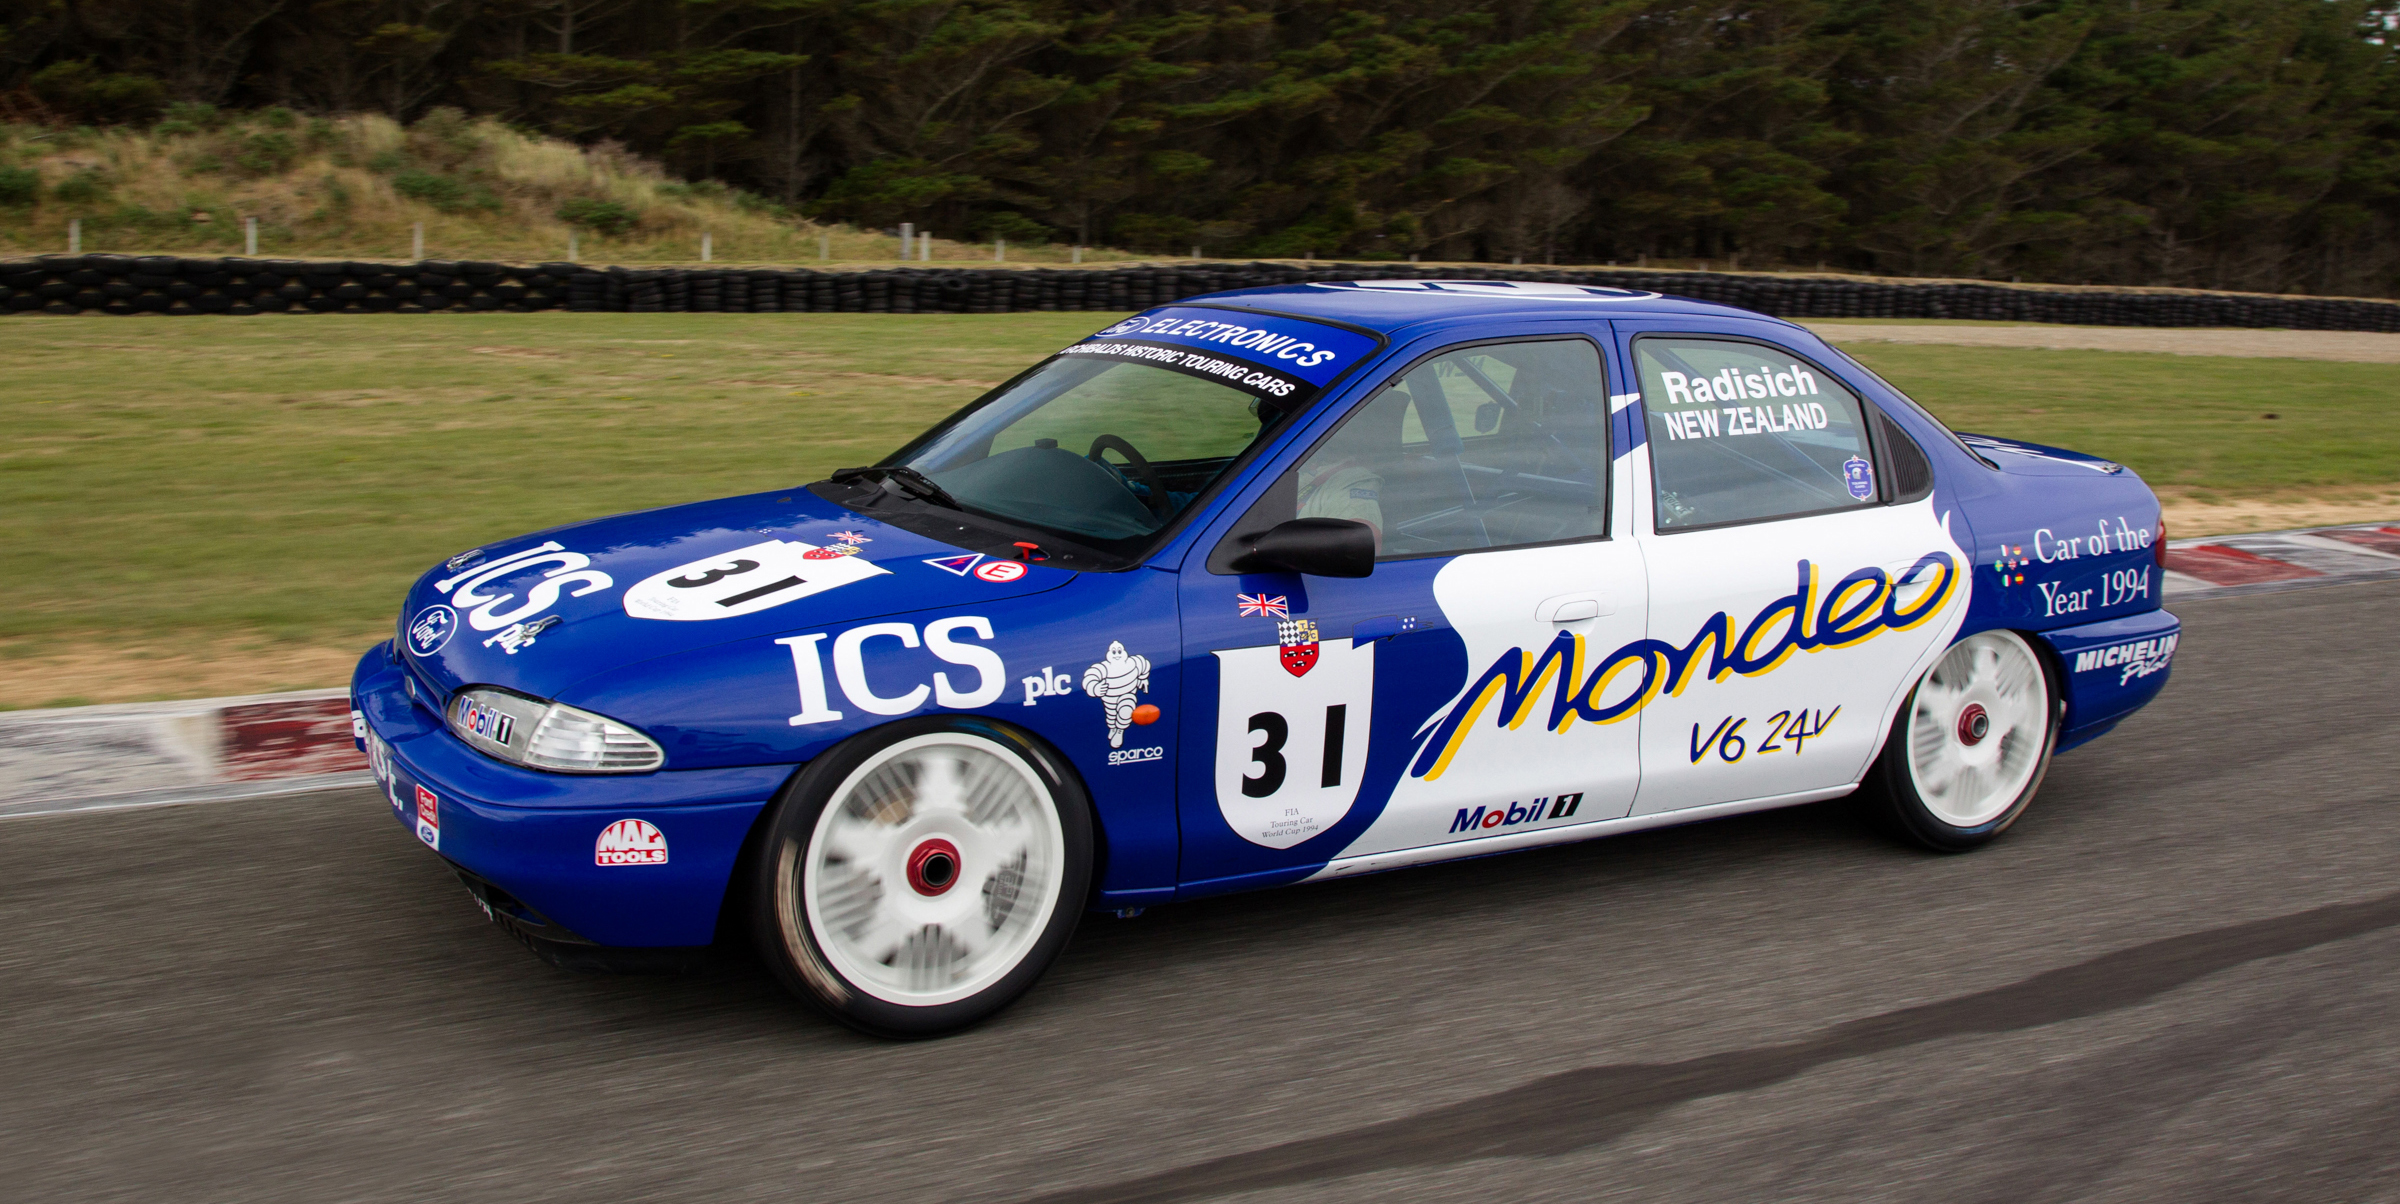 The Mondeo in action in New Zealand. (Photo: New Zealand Classic Driver)